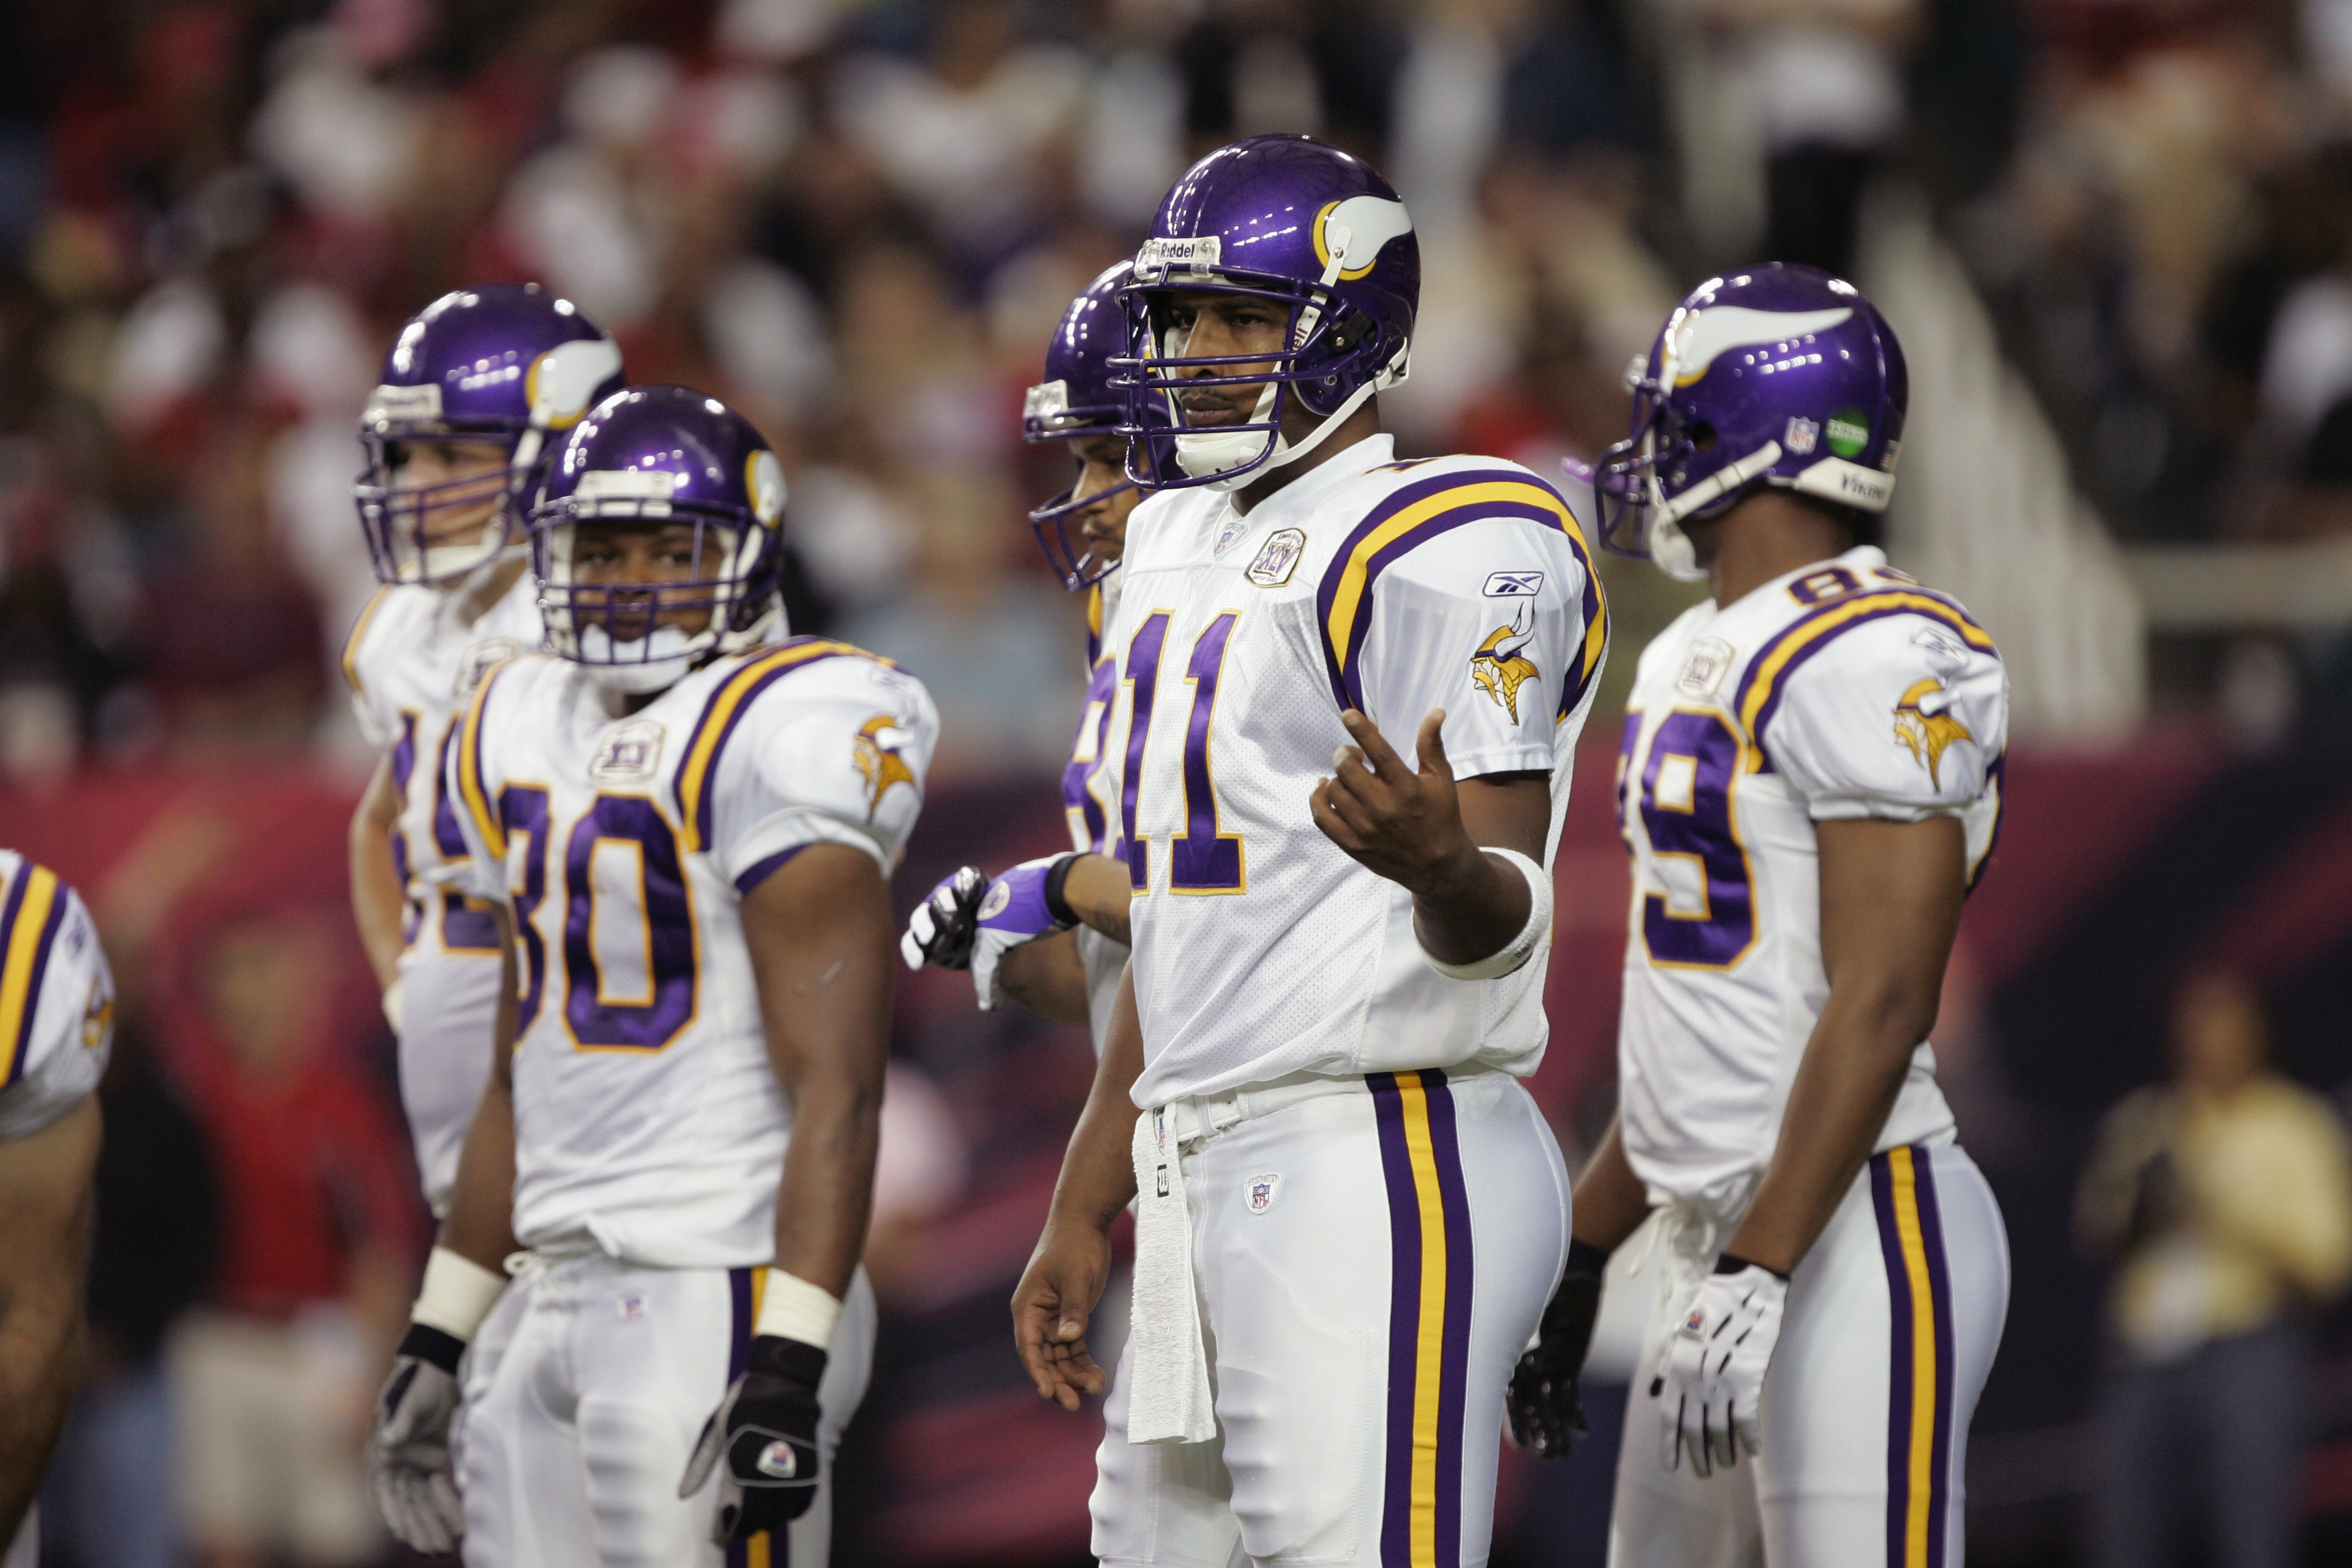 ATLANTA - OCTOBER 2:  Quarterback Daunte Culpepper #11 of the Minnesota Vikings waits for a play call from the sideline against the Atlanta Falcons on October 2, 2005 at the Georgia Dome in Atlanta, Georgia.  The Falcons won 30-10.  (Photo by Brian Bahr/G